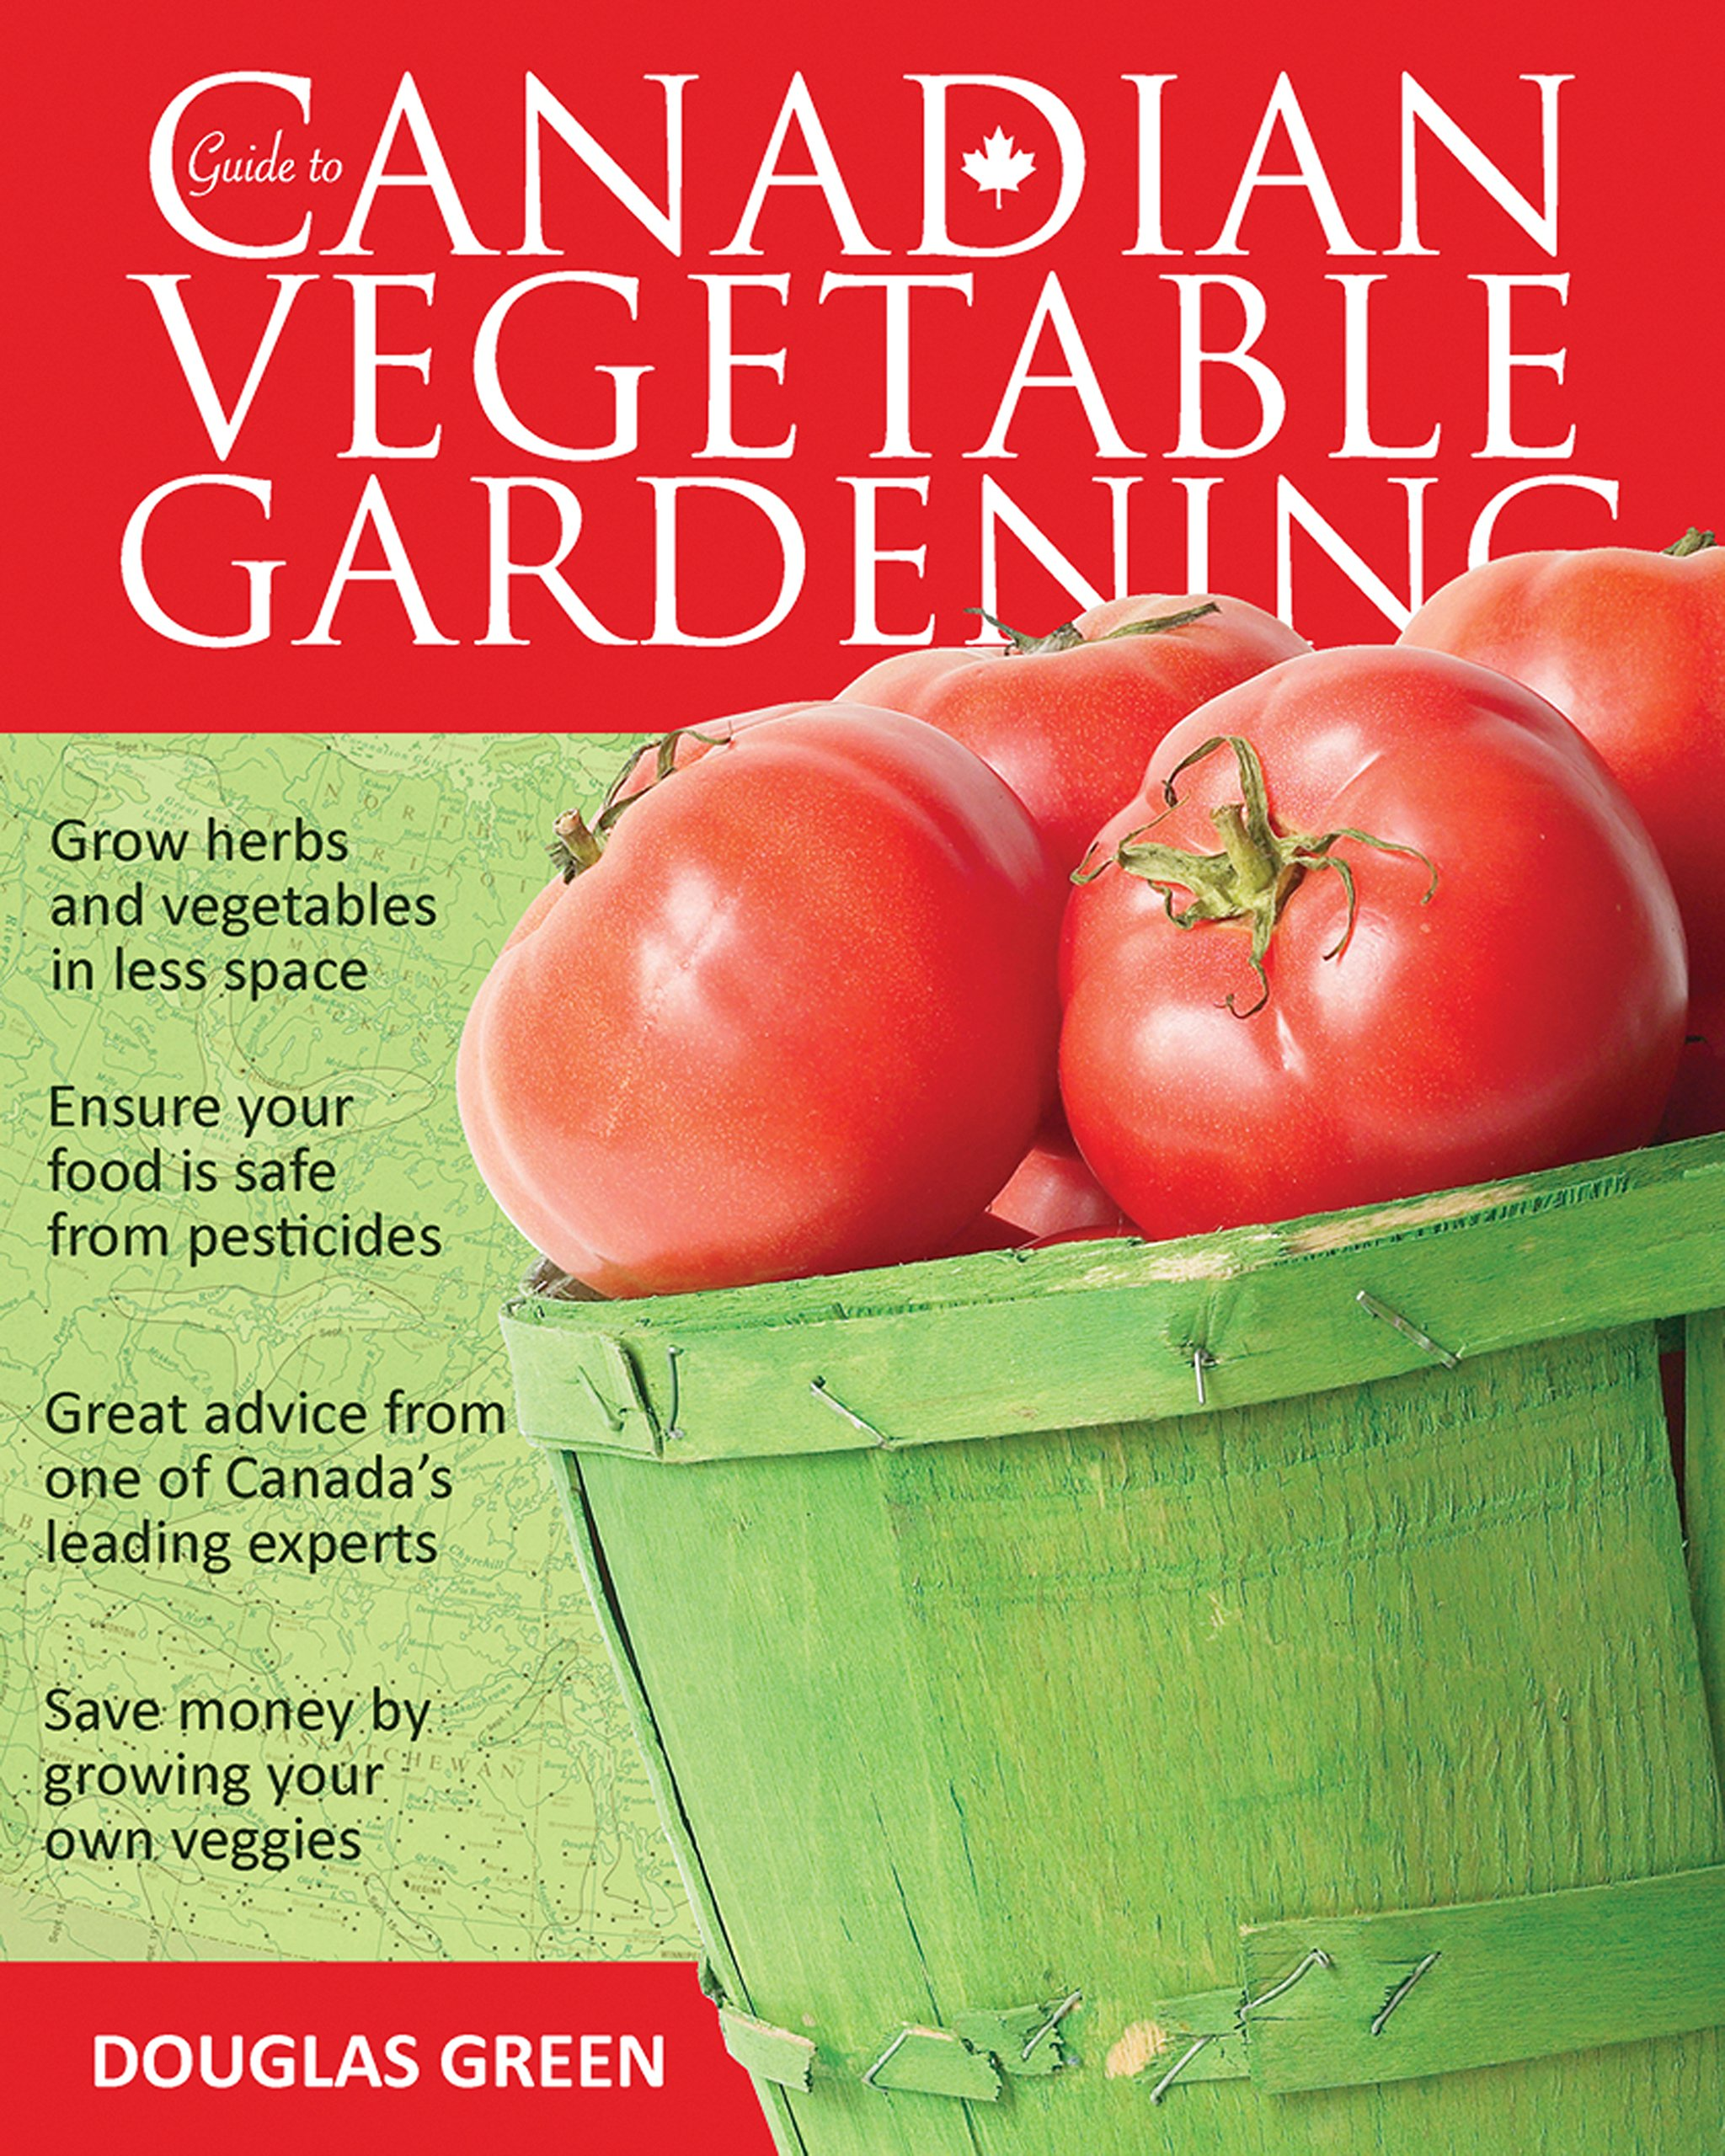 Download Guide to Canadian Vegetable Gardening (Vegetable Gardening Guides) ebook